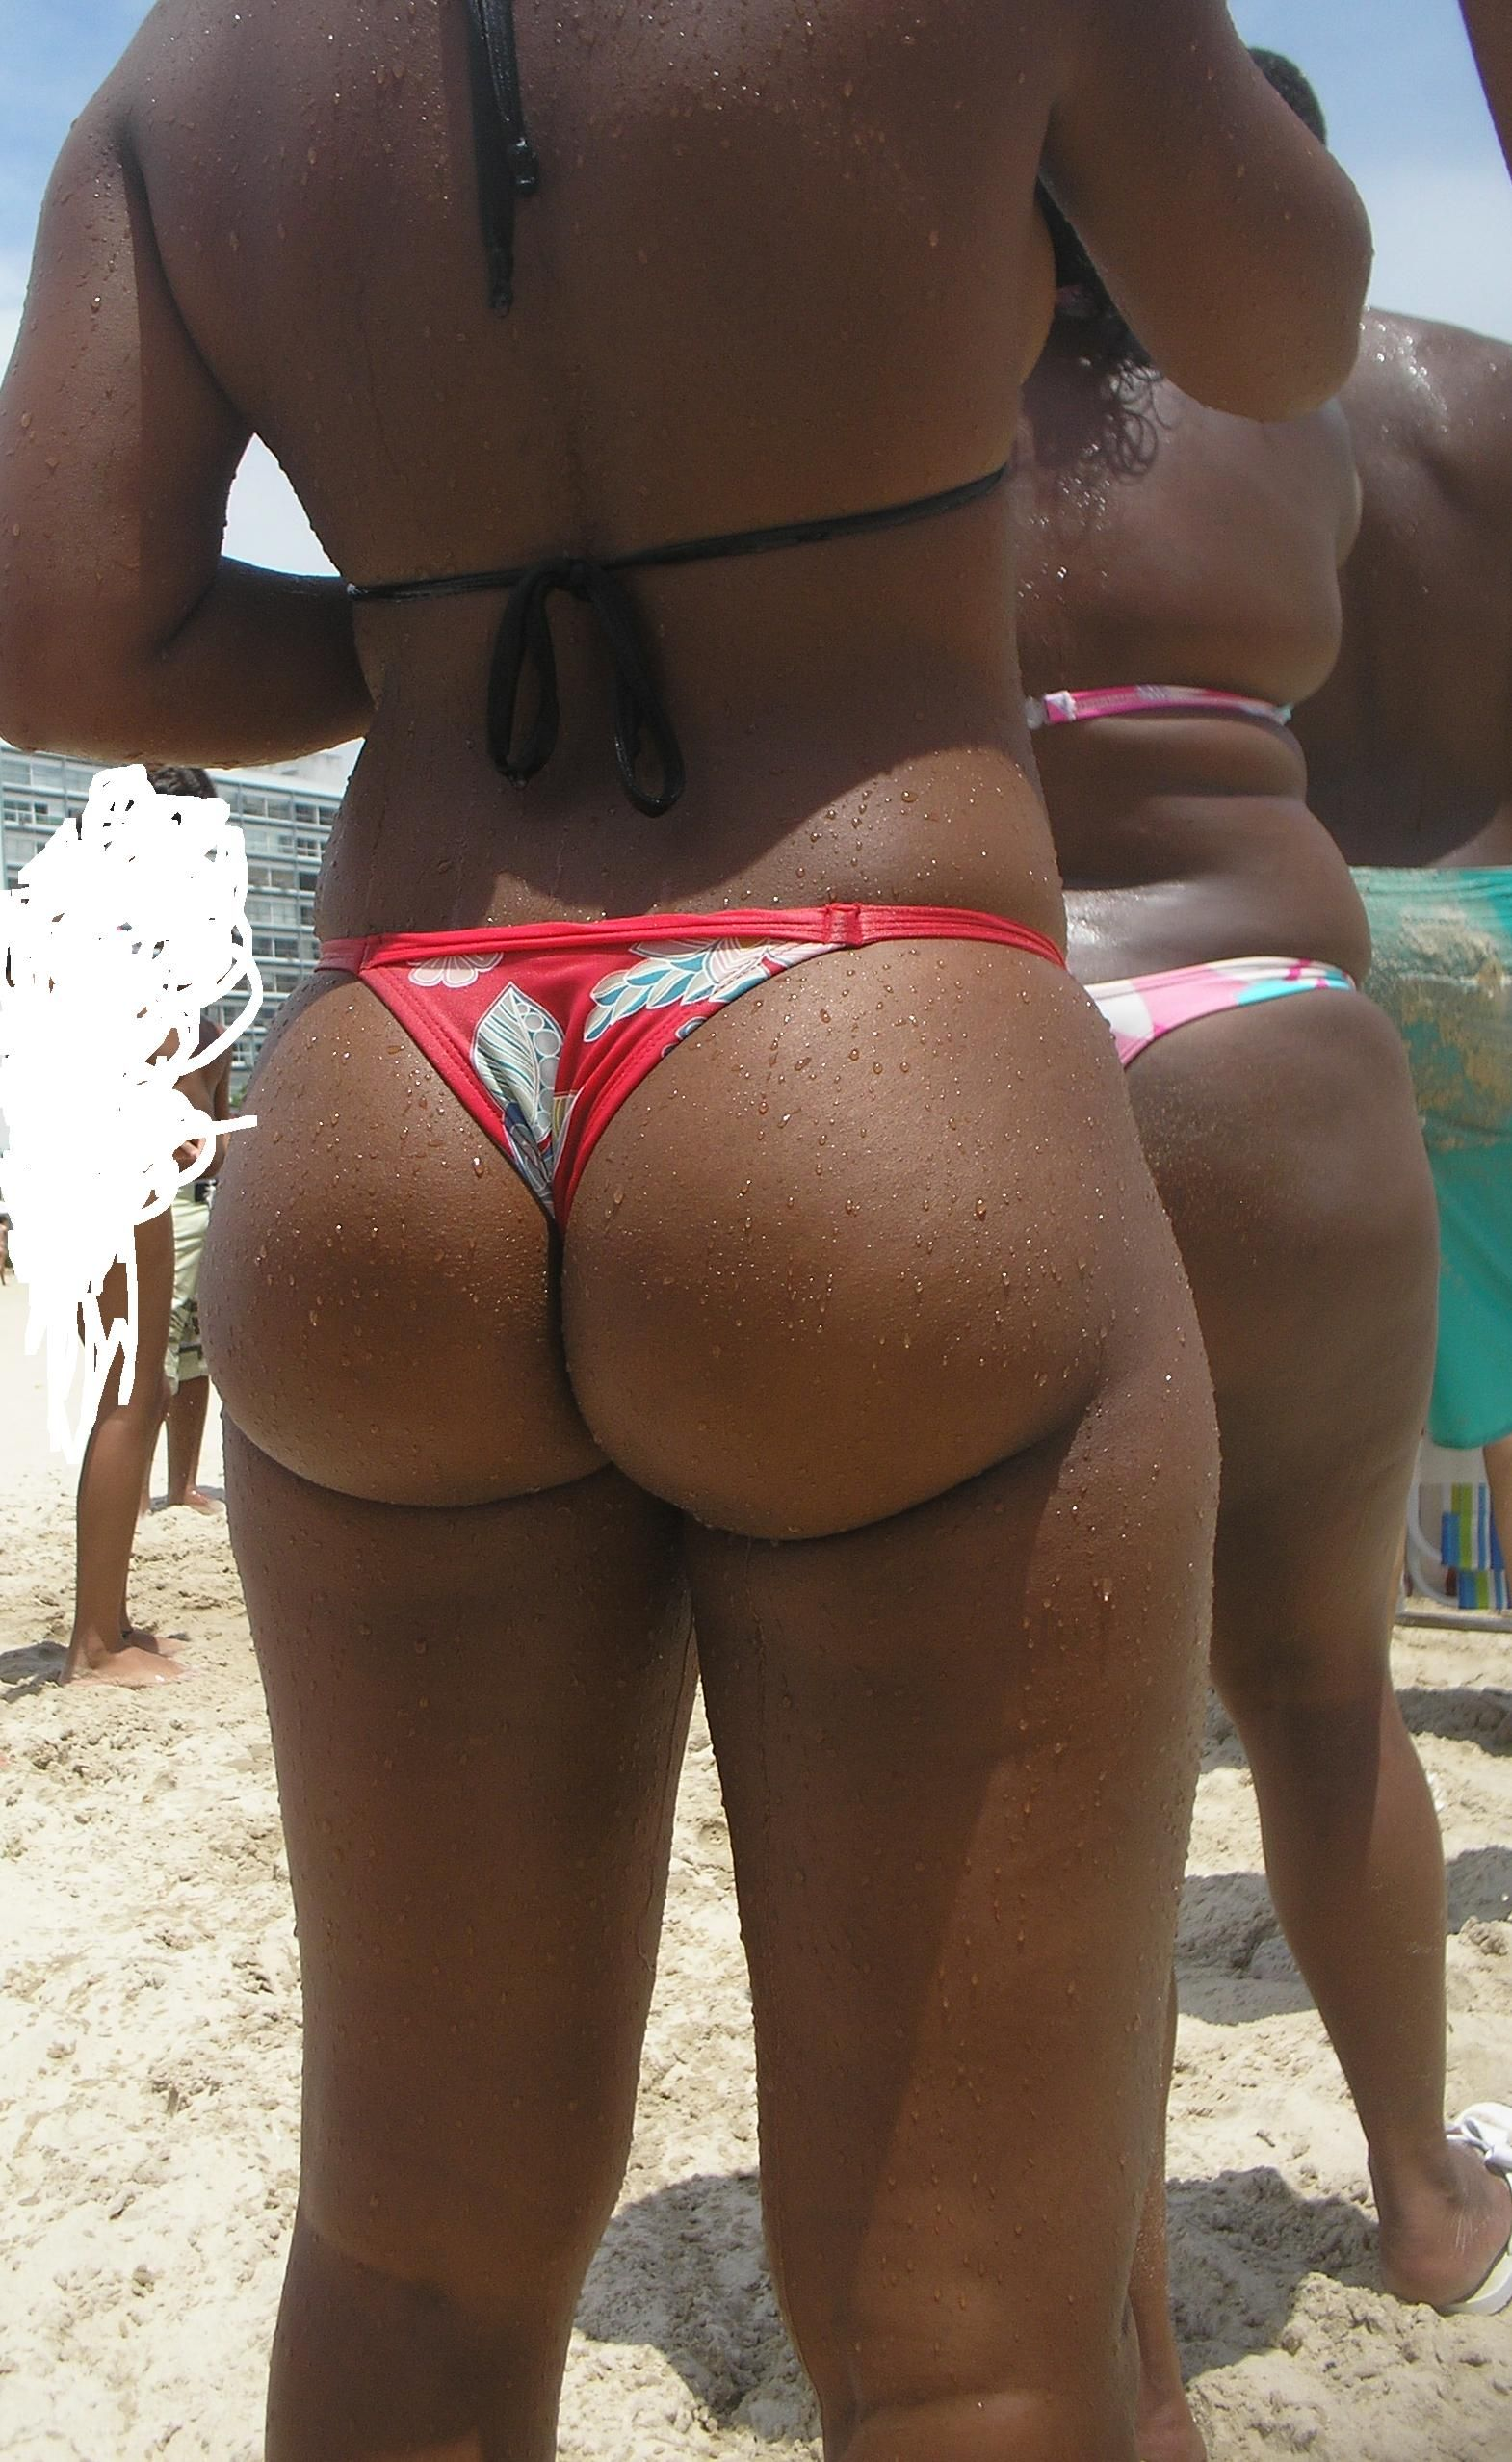 Round Candid Booty Big Round Brazilian Booty On The Beach